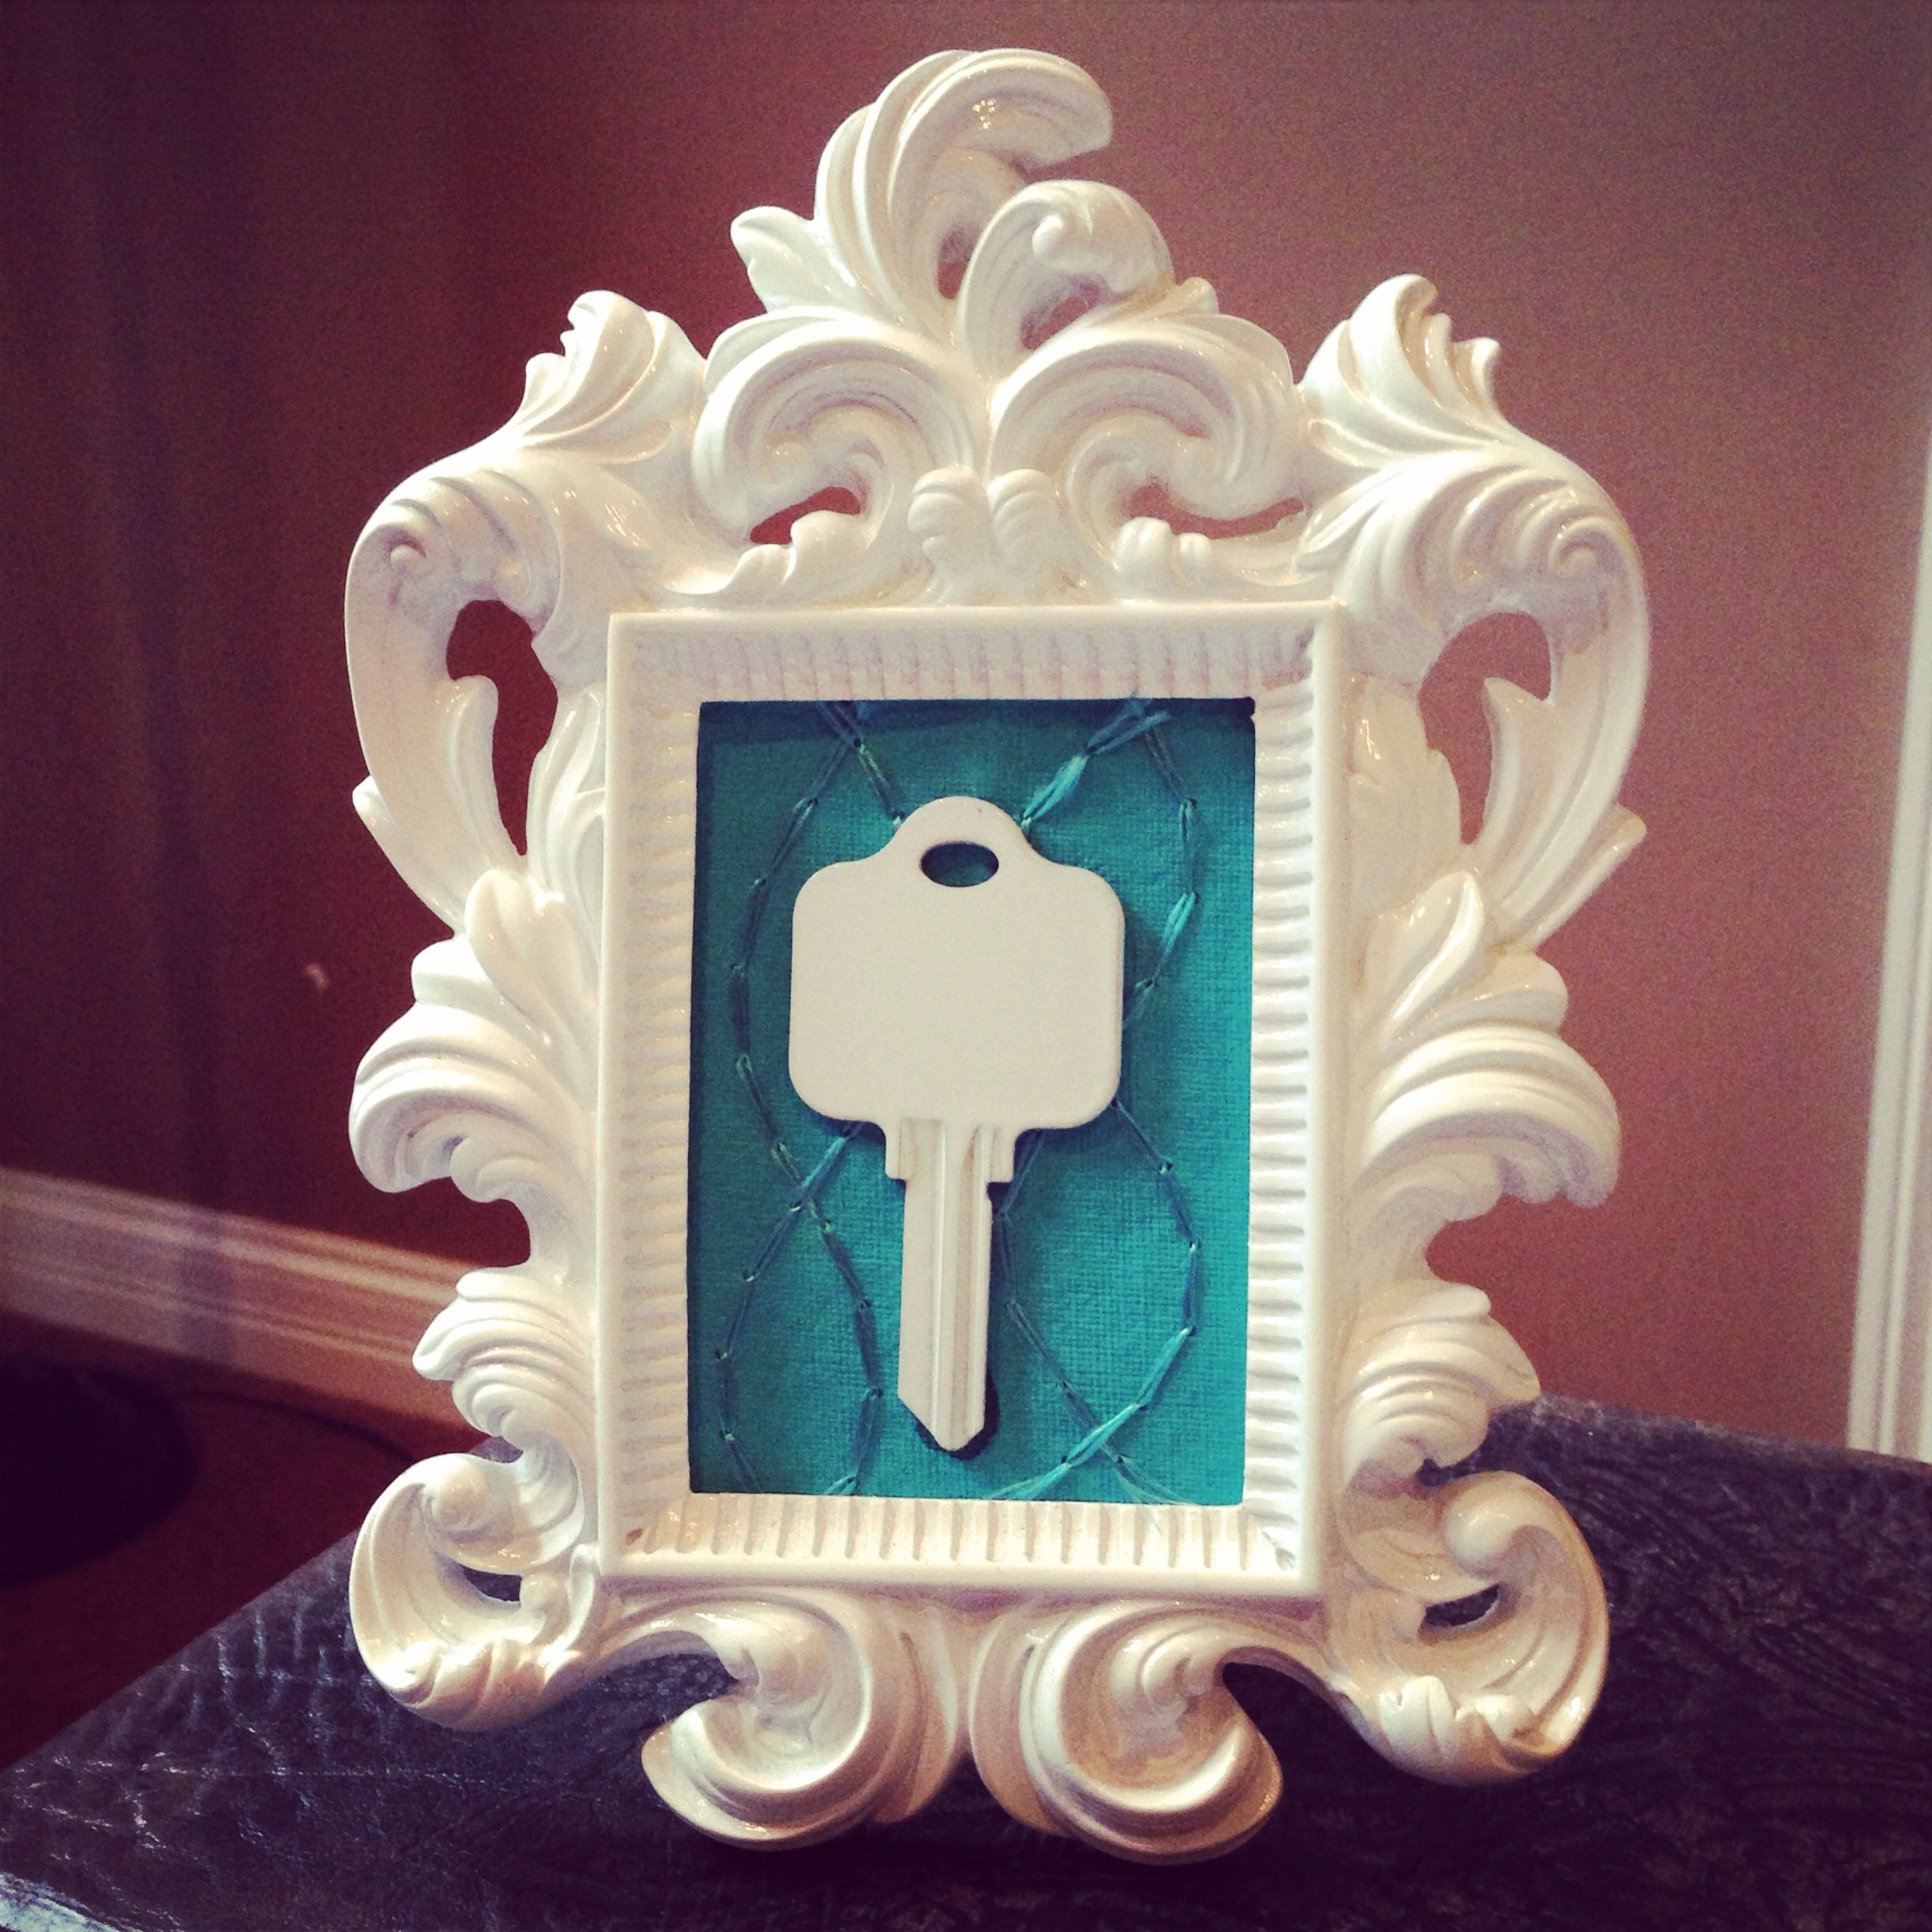 Framed House Key My Favorite Closing Gift For First Time -3081